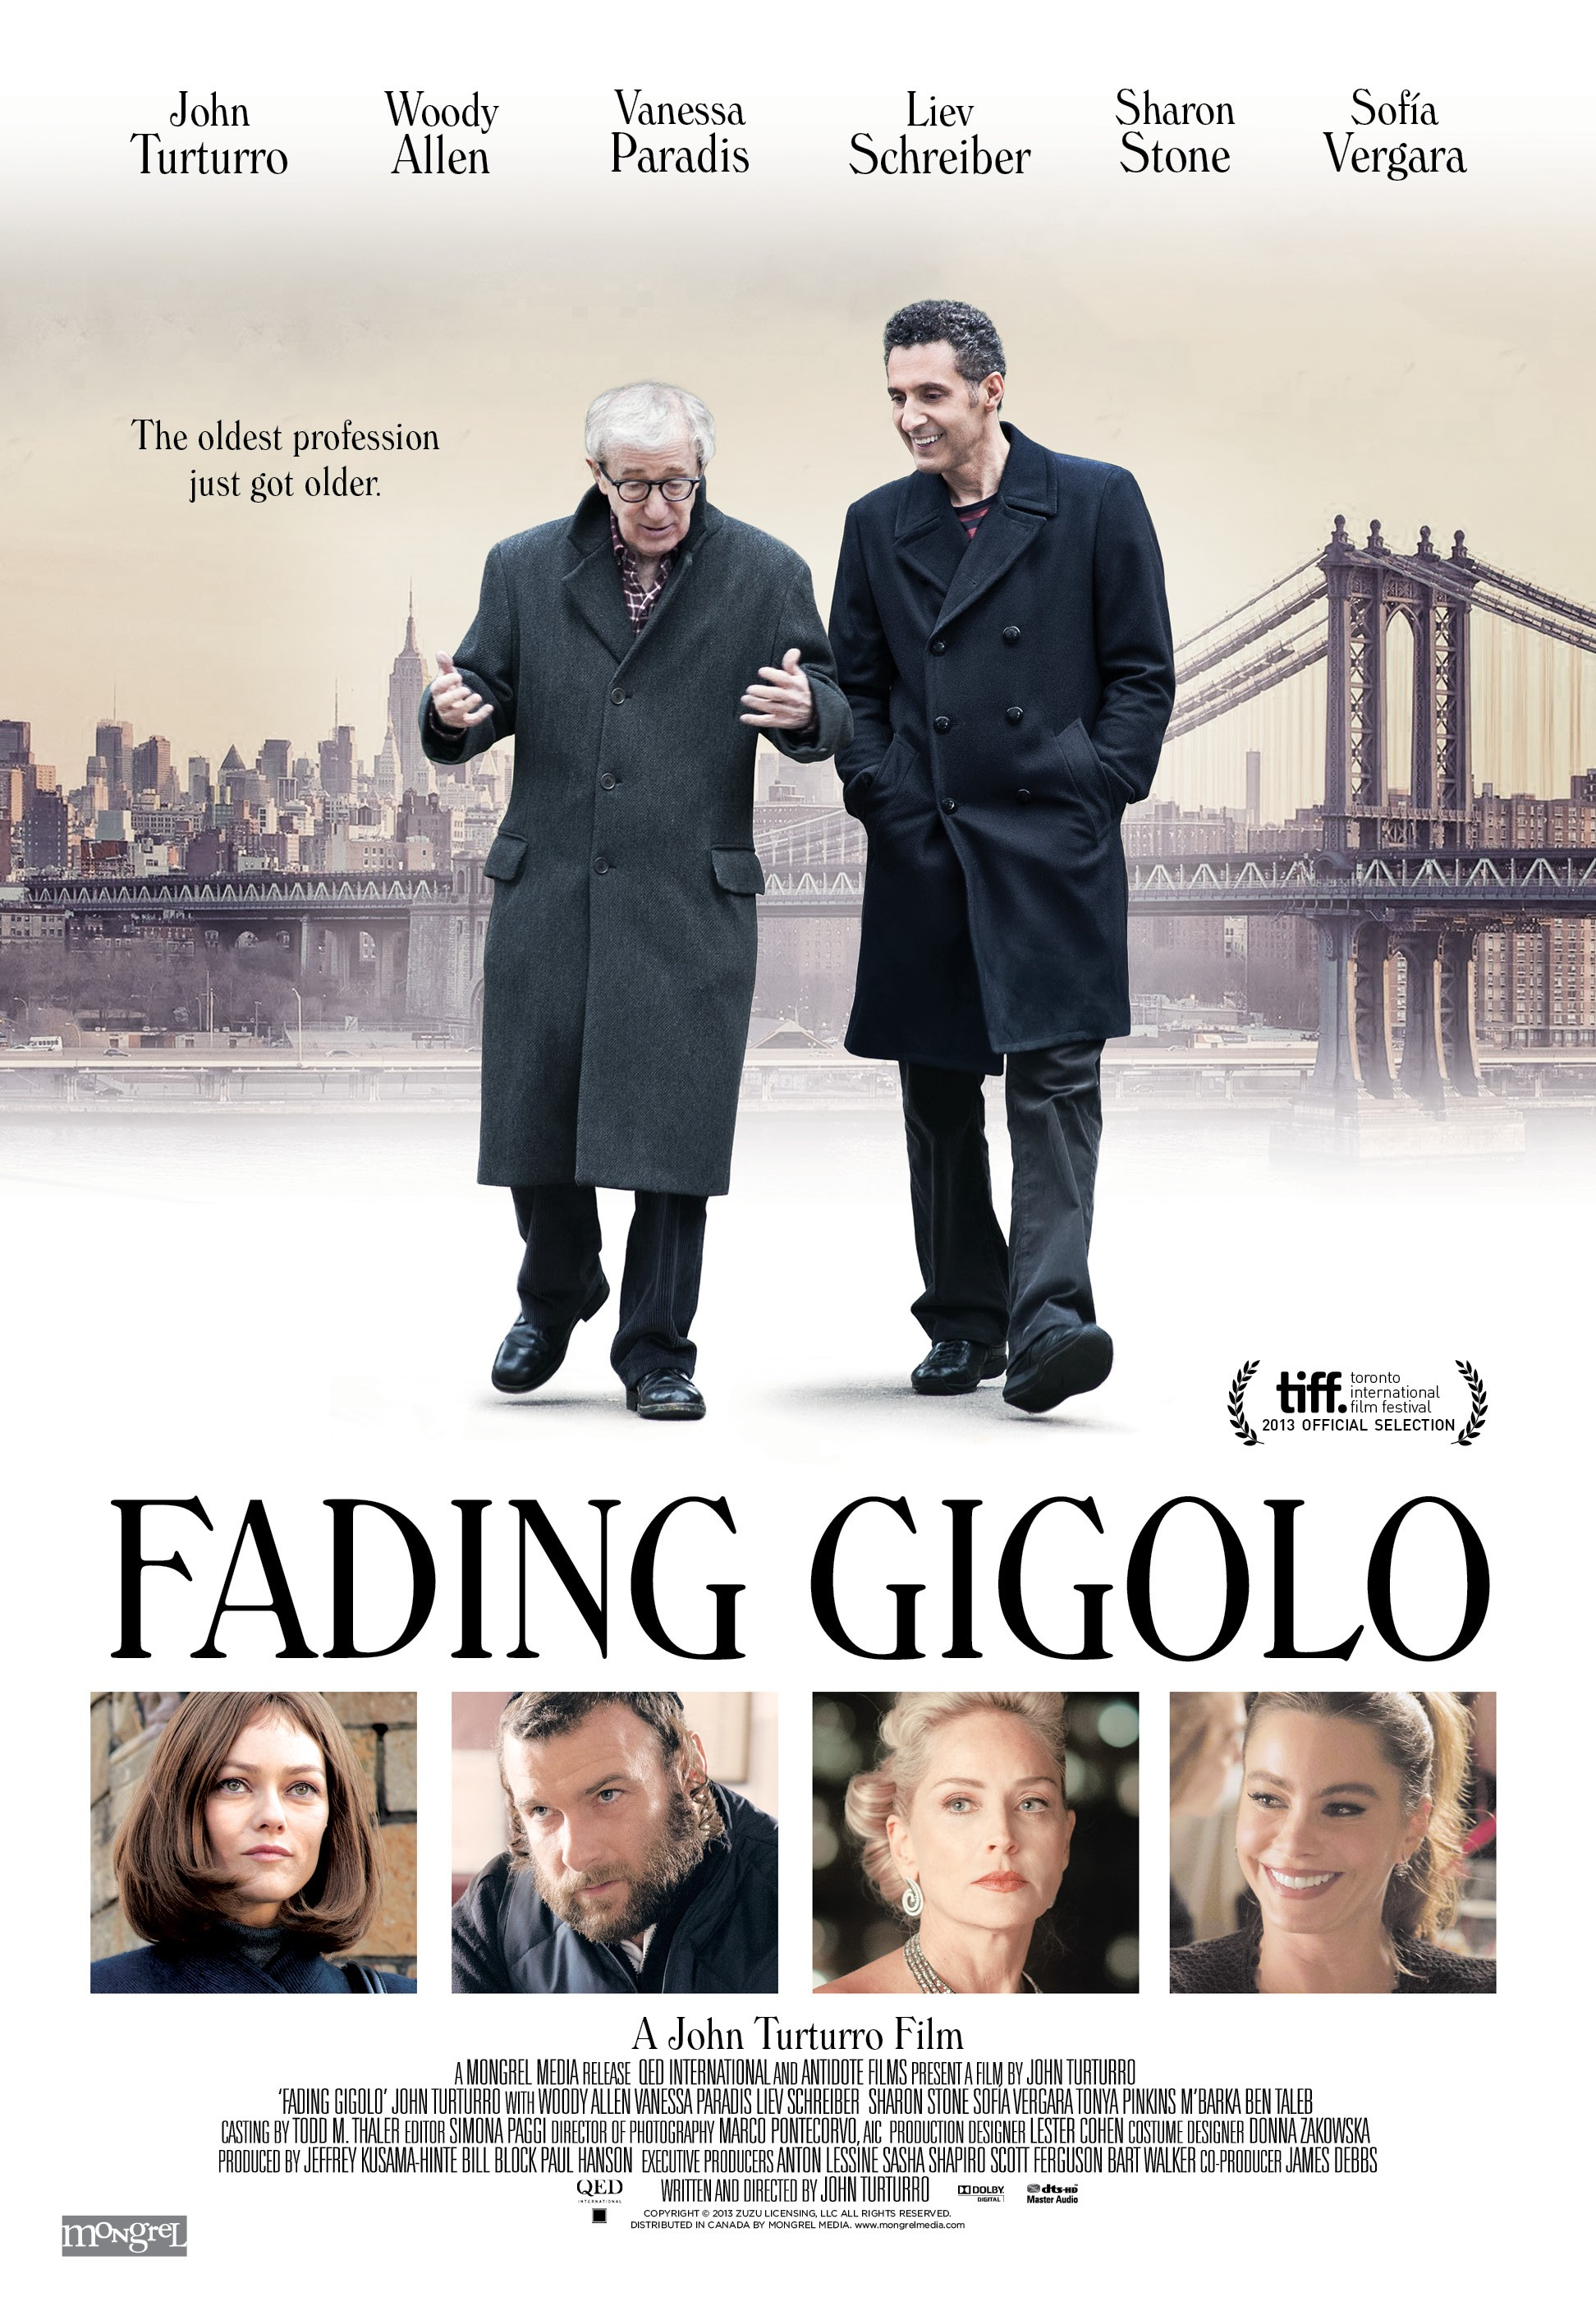 Fading Gigolo-Official Poster Banner PROMO POSTER XXLG-10MARCO2014